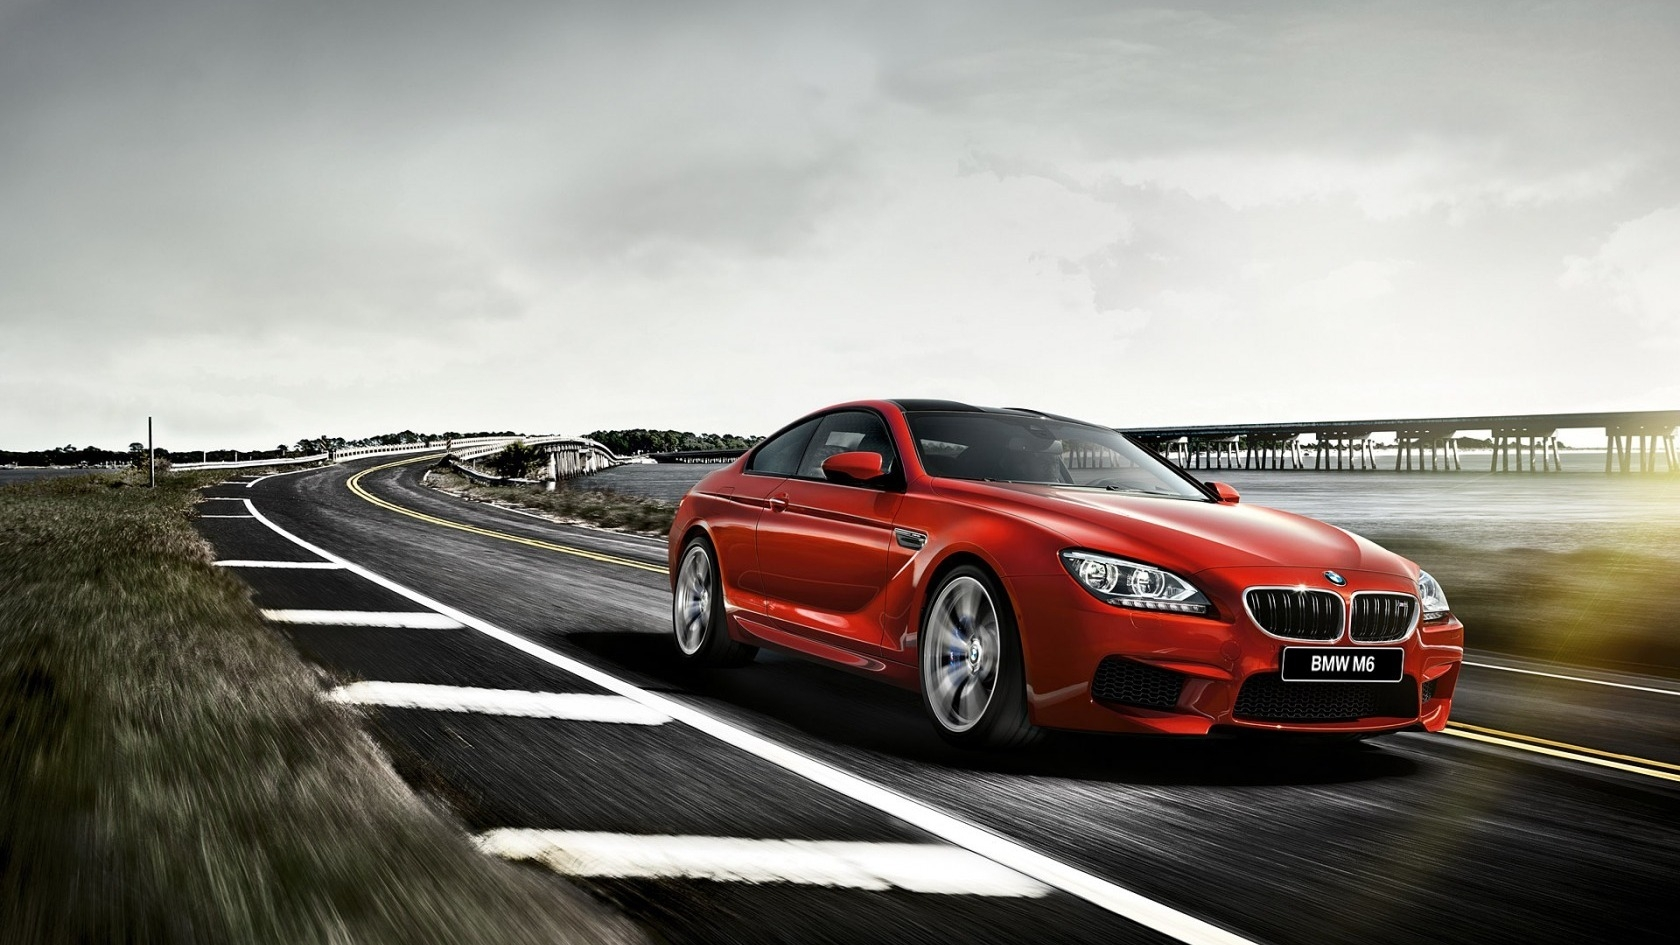 Cute Cartoon Nature Wallpapers Red Bmw M6 F13 Coupe On Road Gorgeous Car